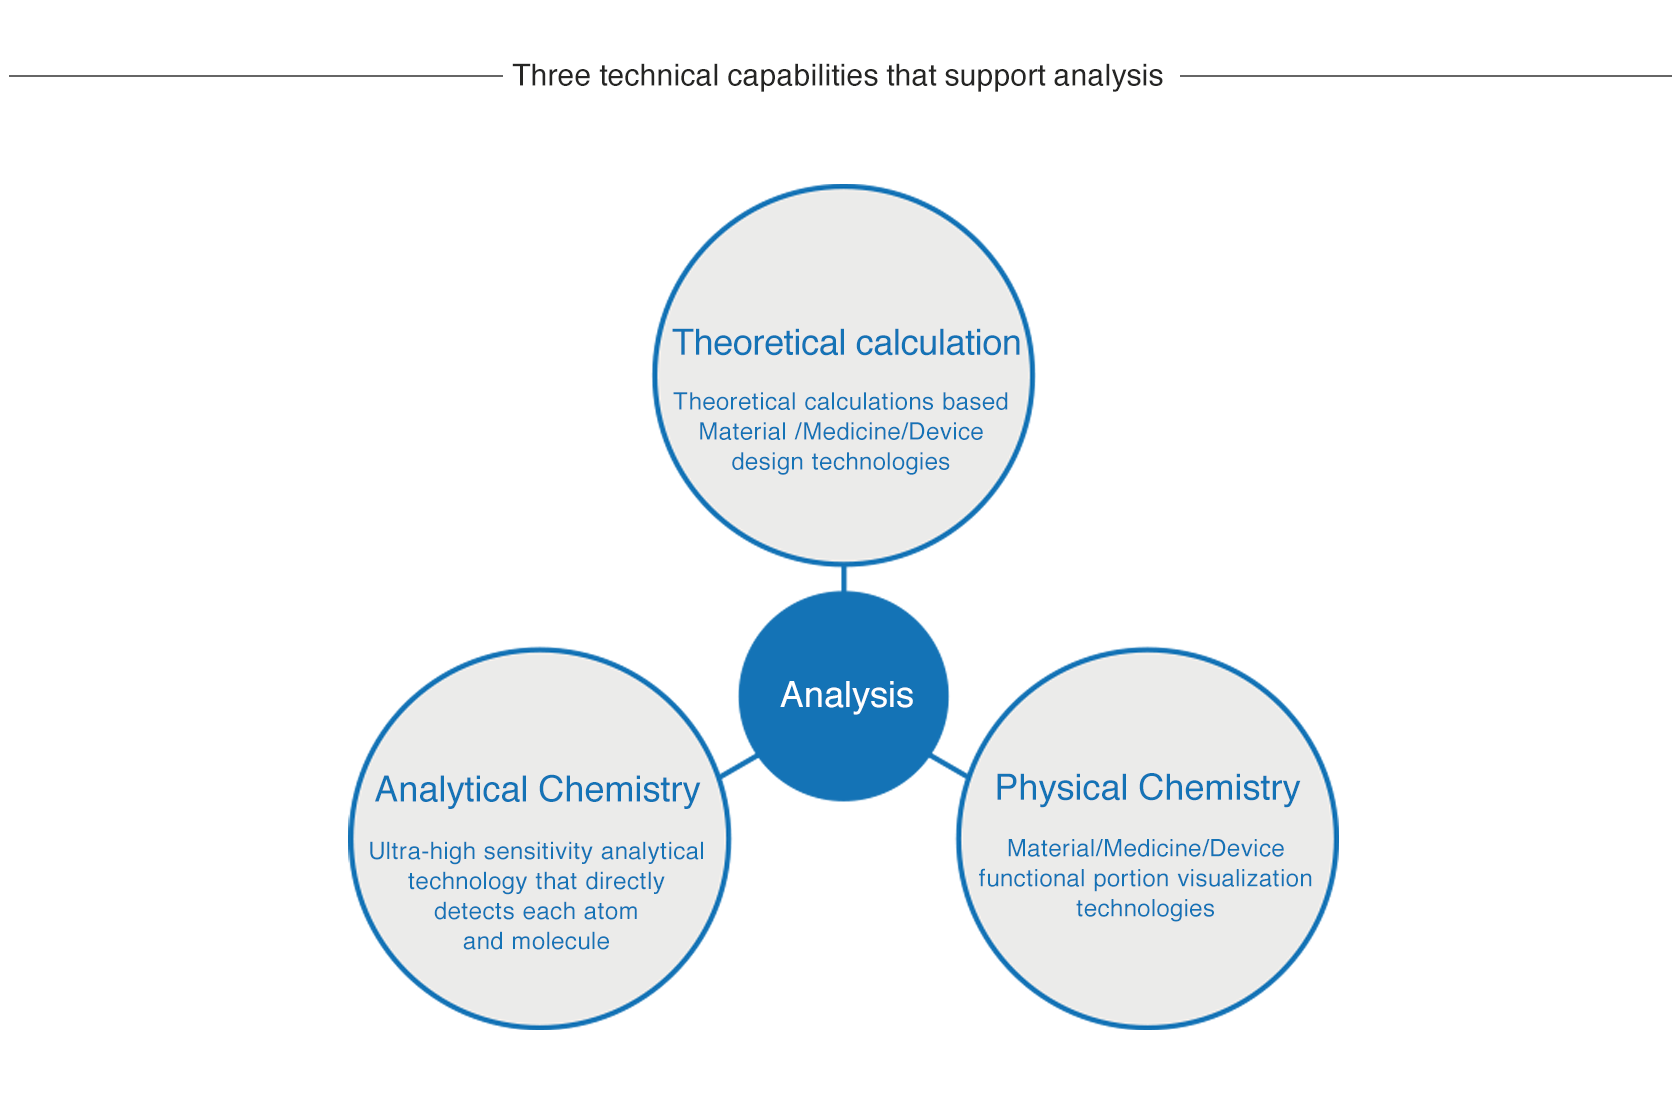 [image] Clearly shows mechanisms using analytical technology